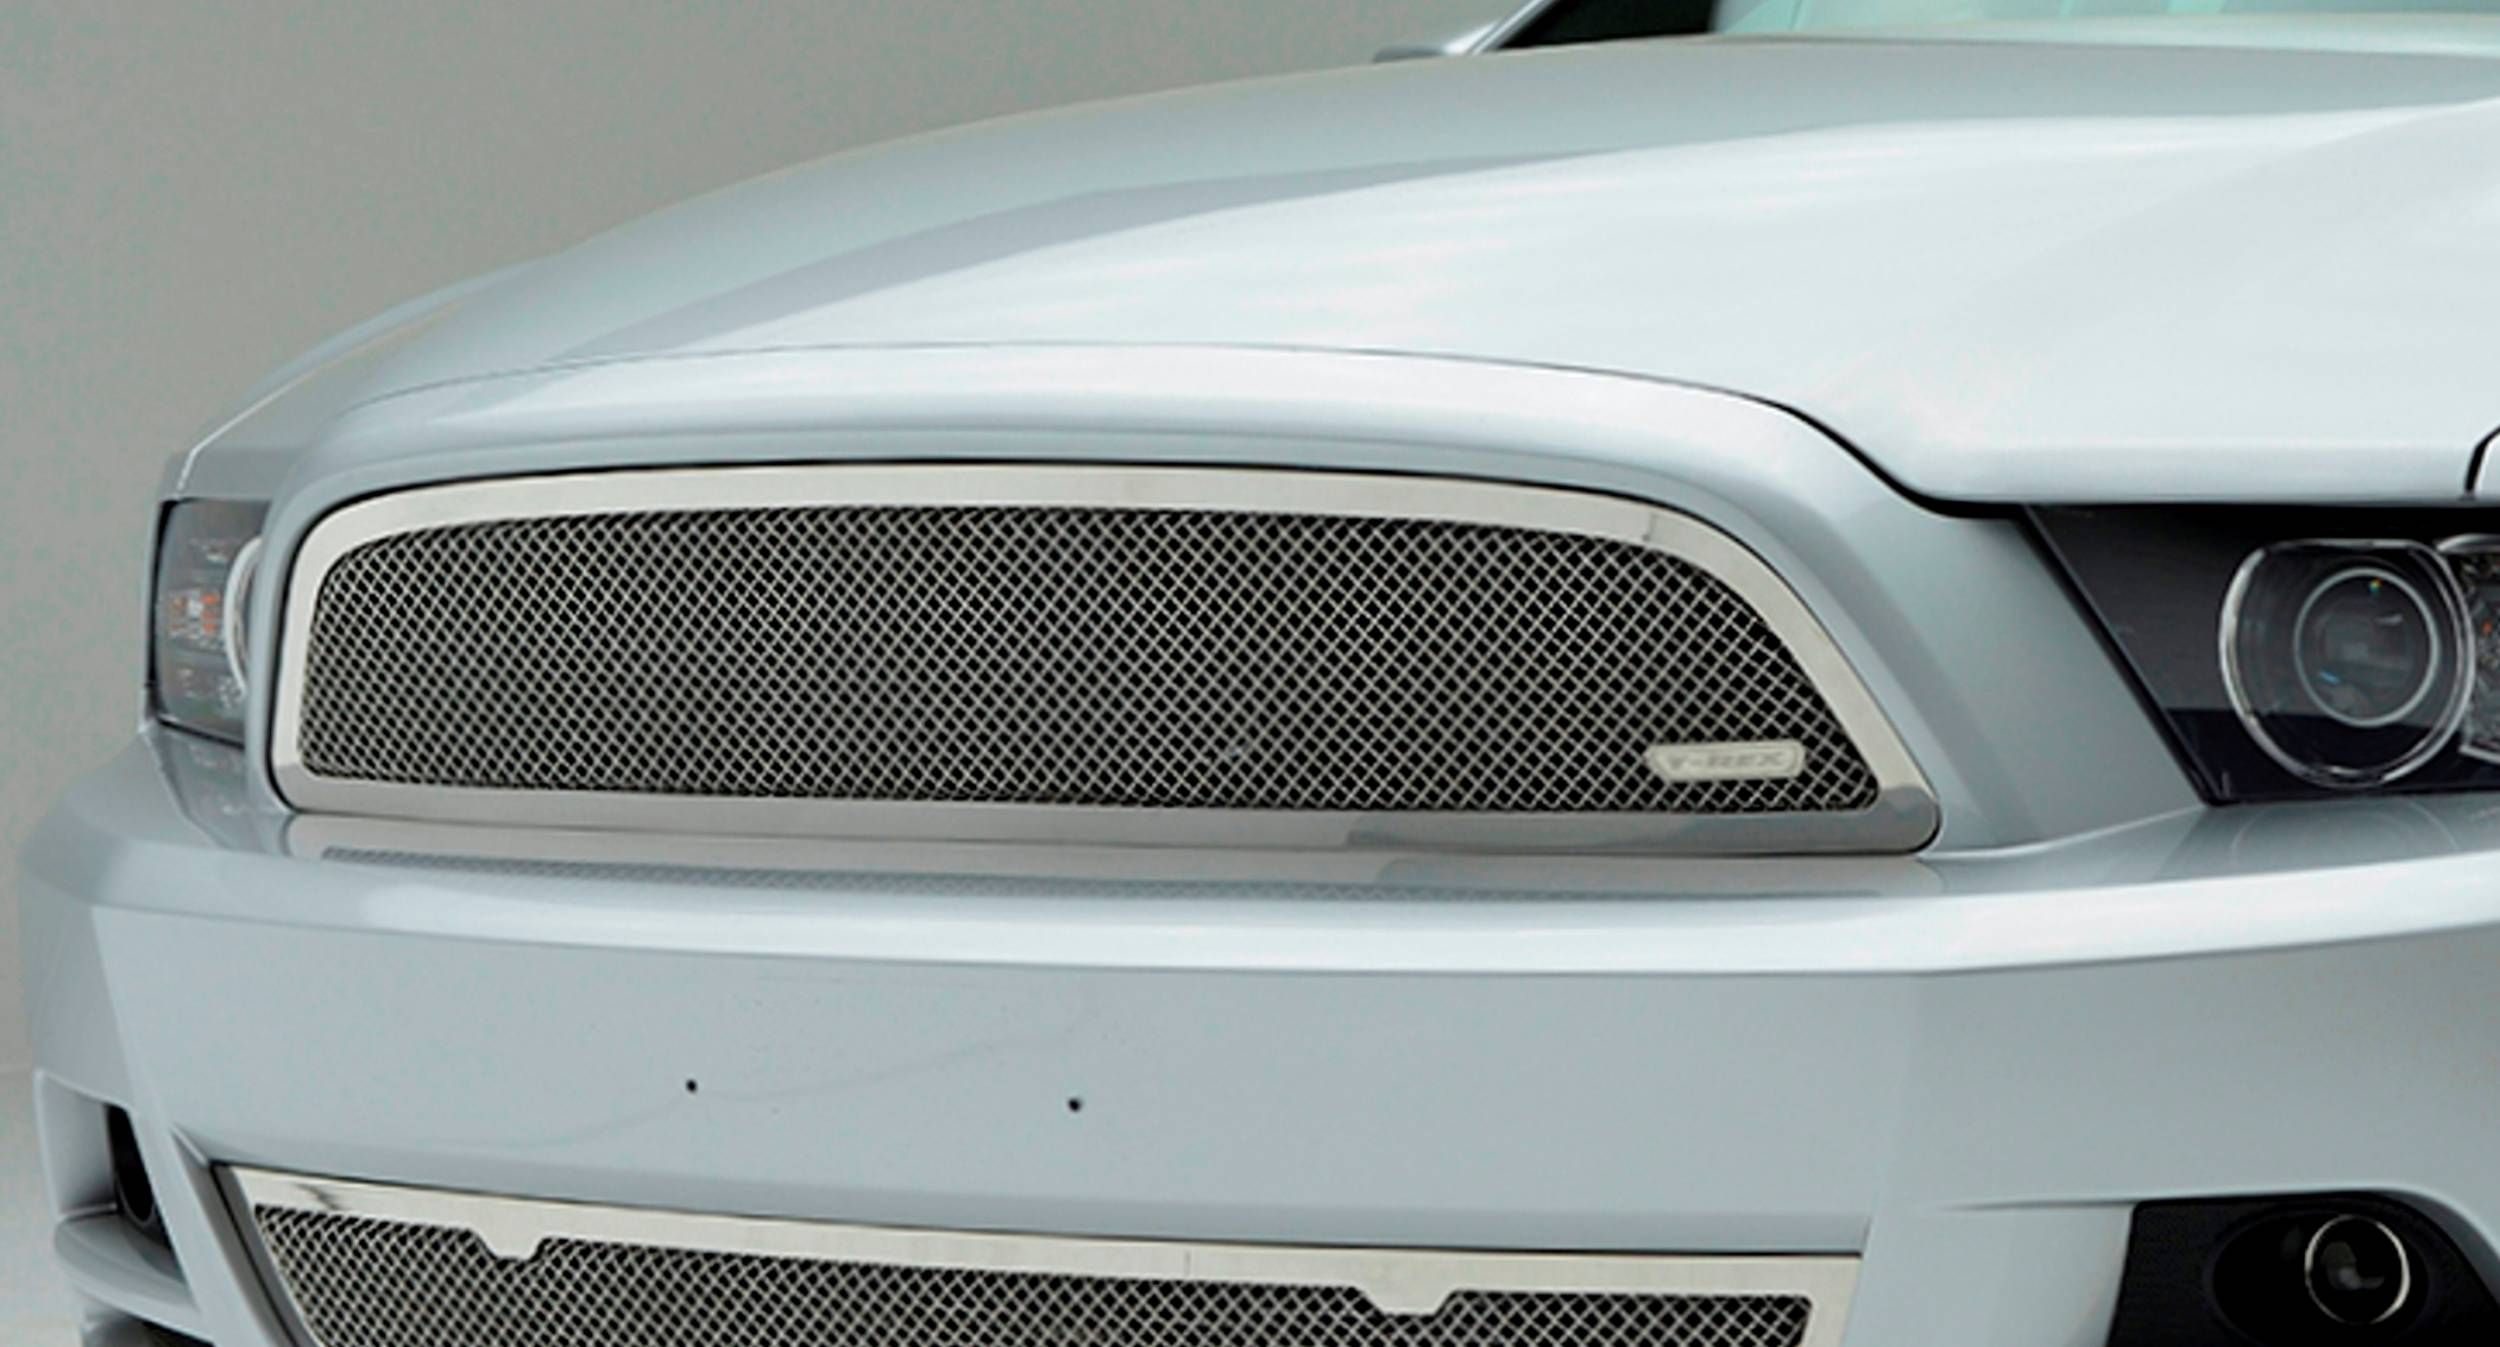 Ford Mustang V6 Coupe,  Upper Class, Formed Mesh Grille, Main, No Logo cutout, Overlay, 1 Pc, Black Powdercoated Mild Steel